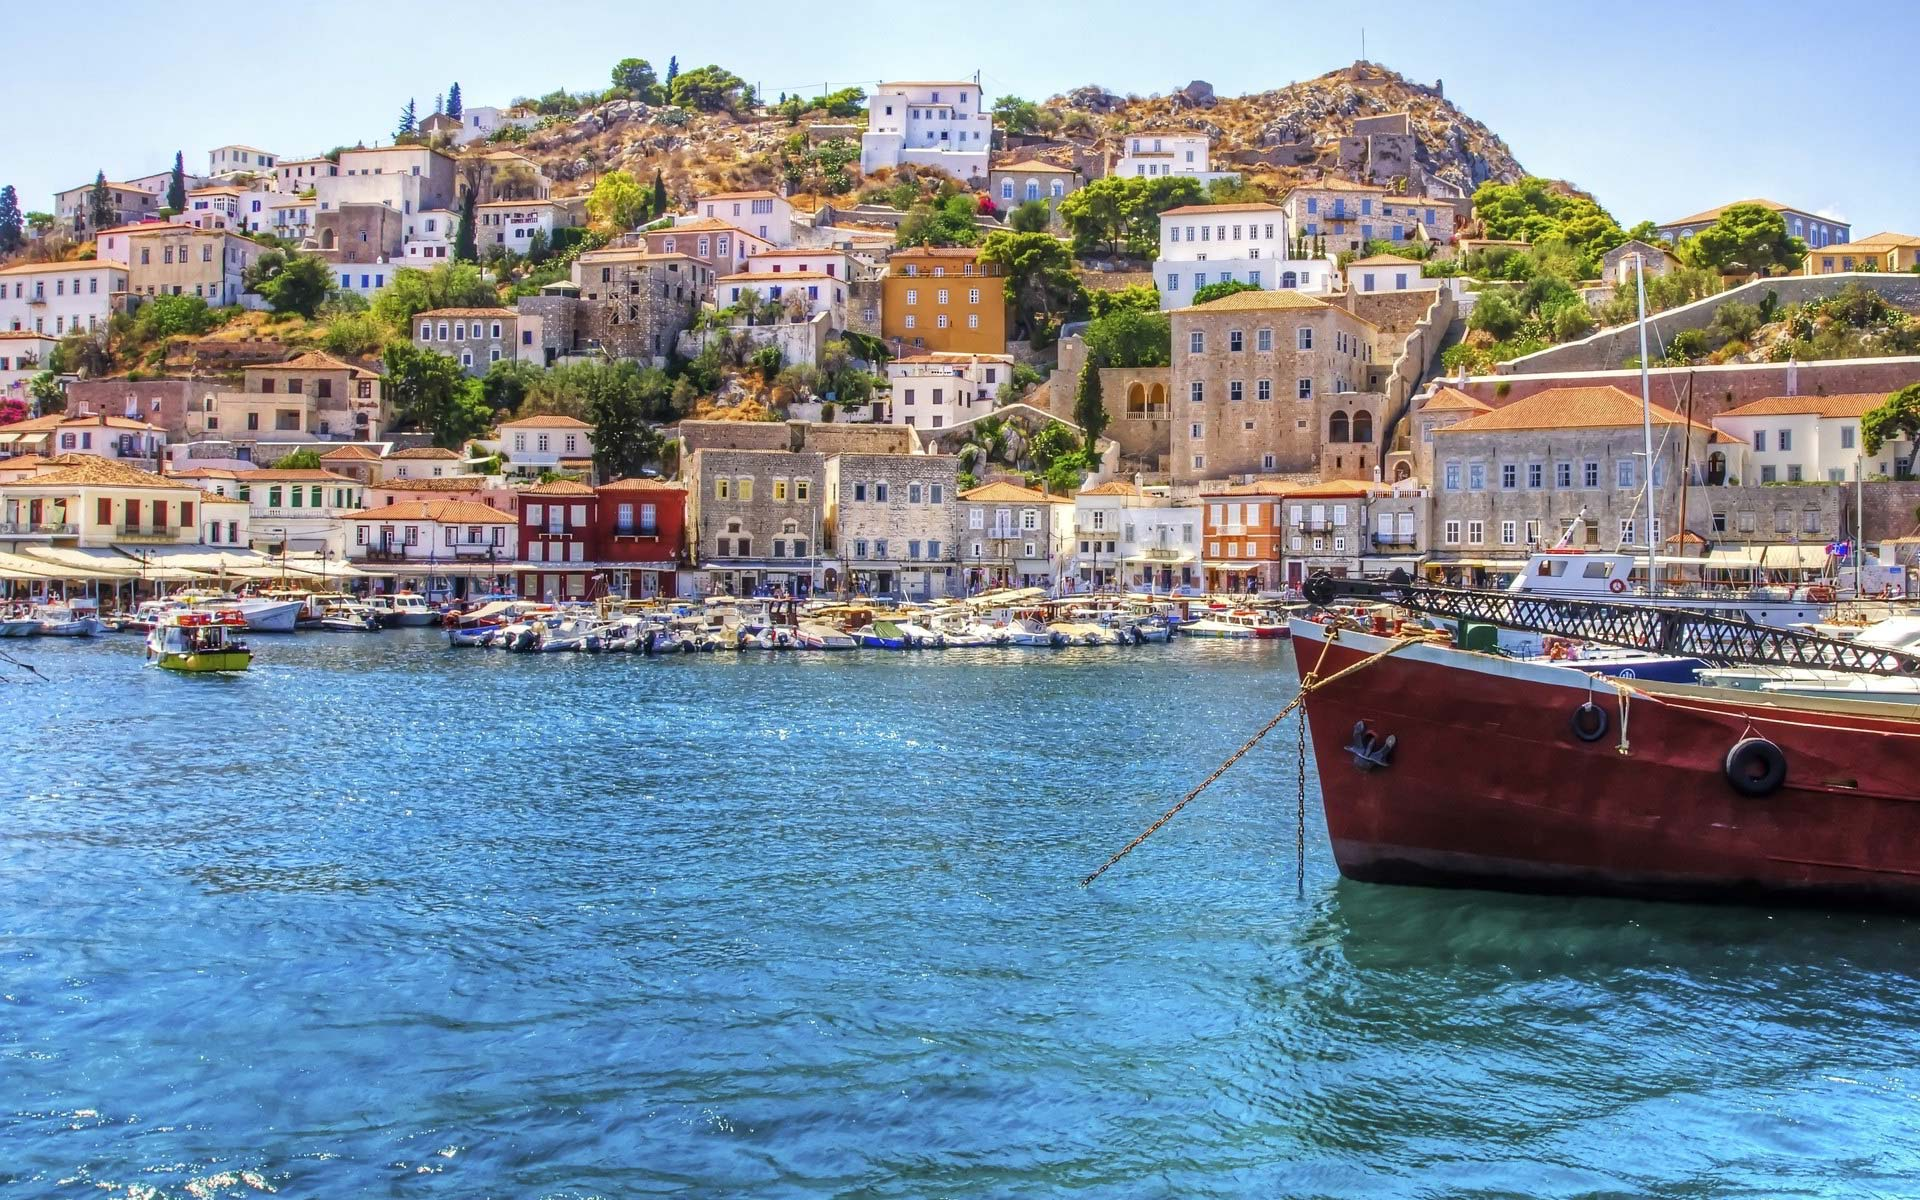 Hydra, Poros & Aegina islands